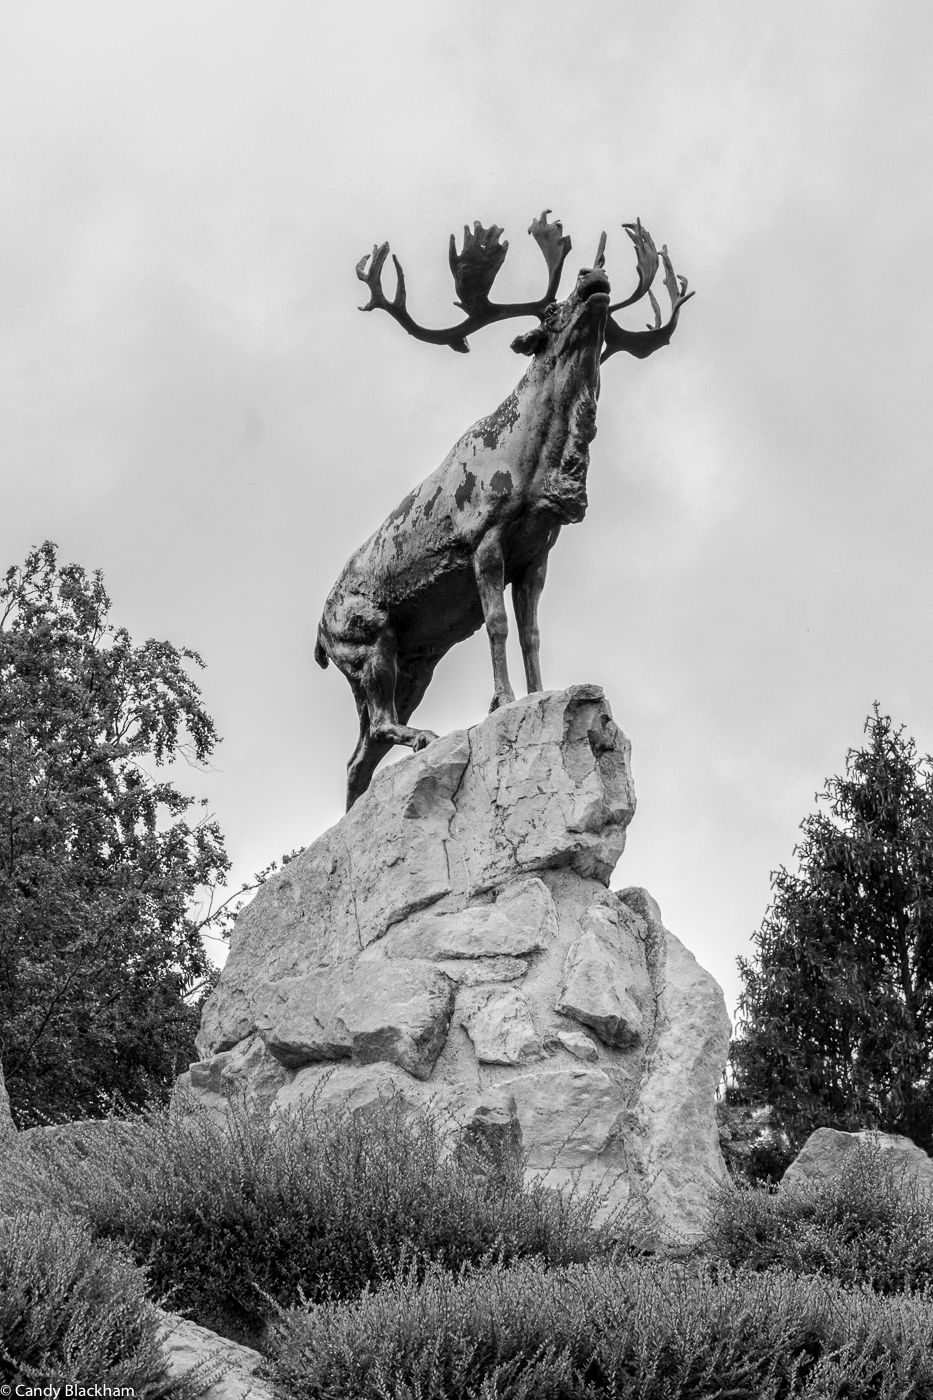 The caribou memorial at Beaumont-Hamel